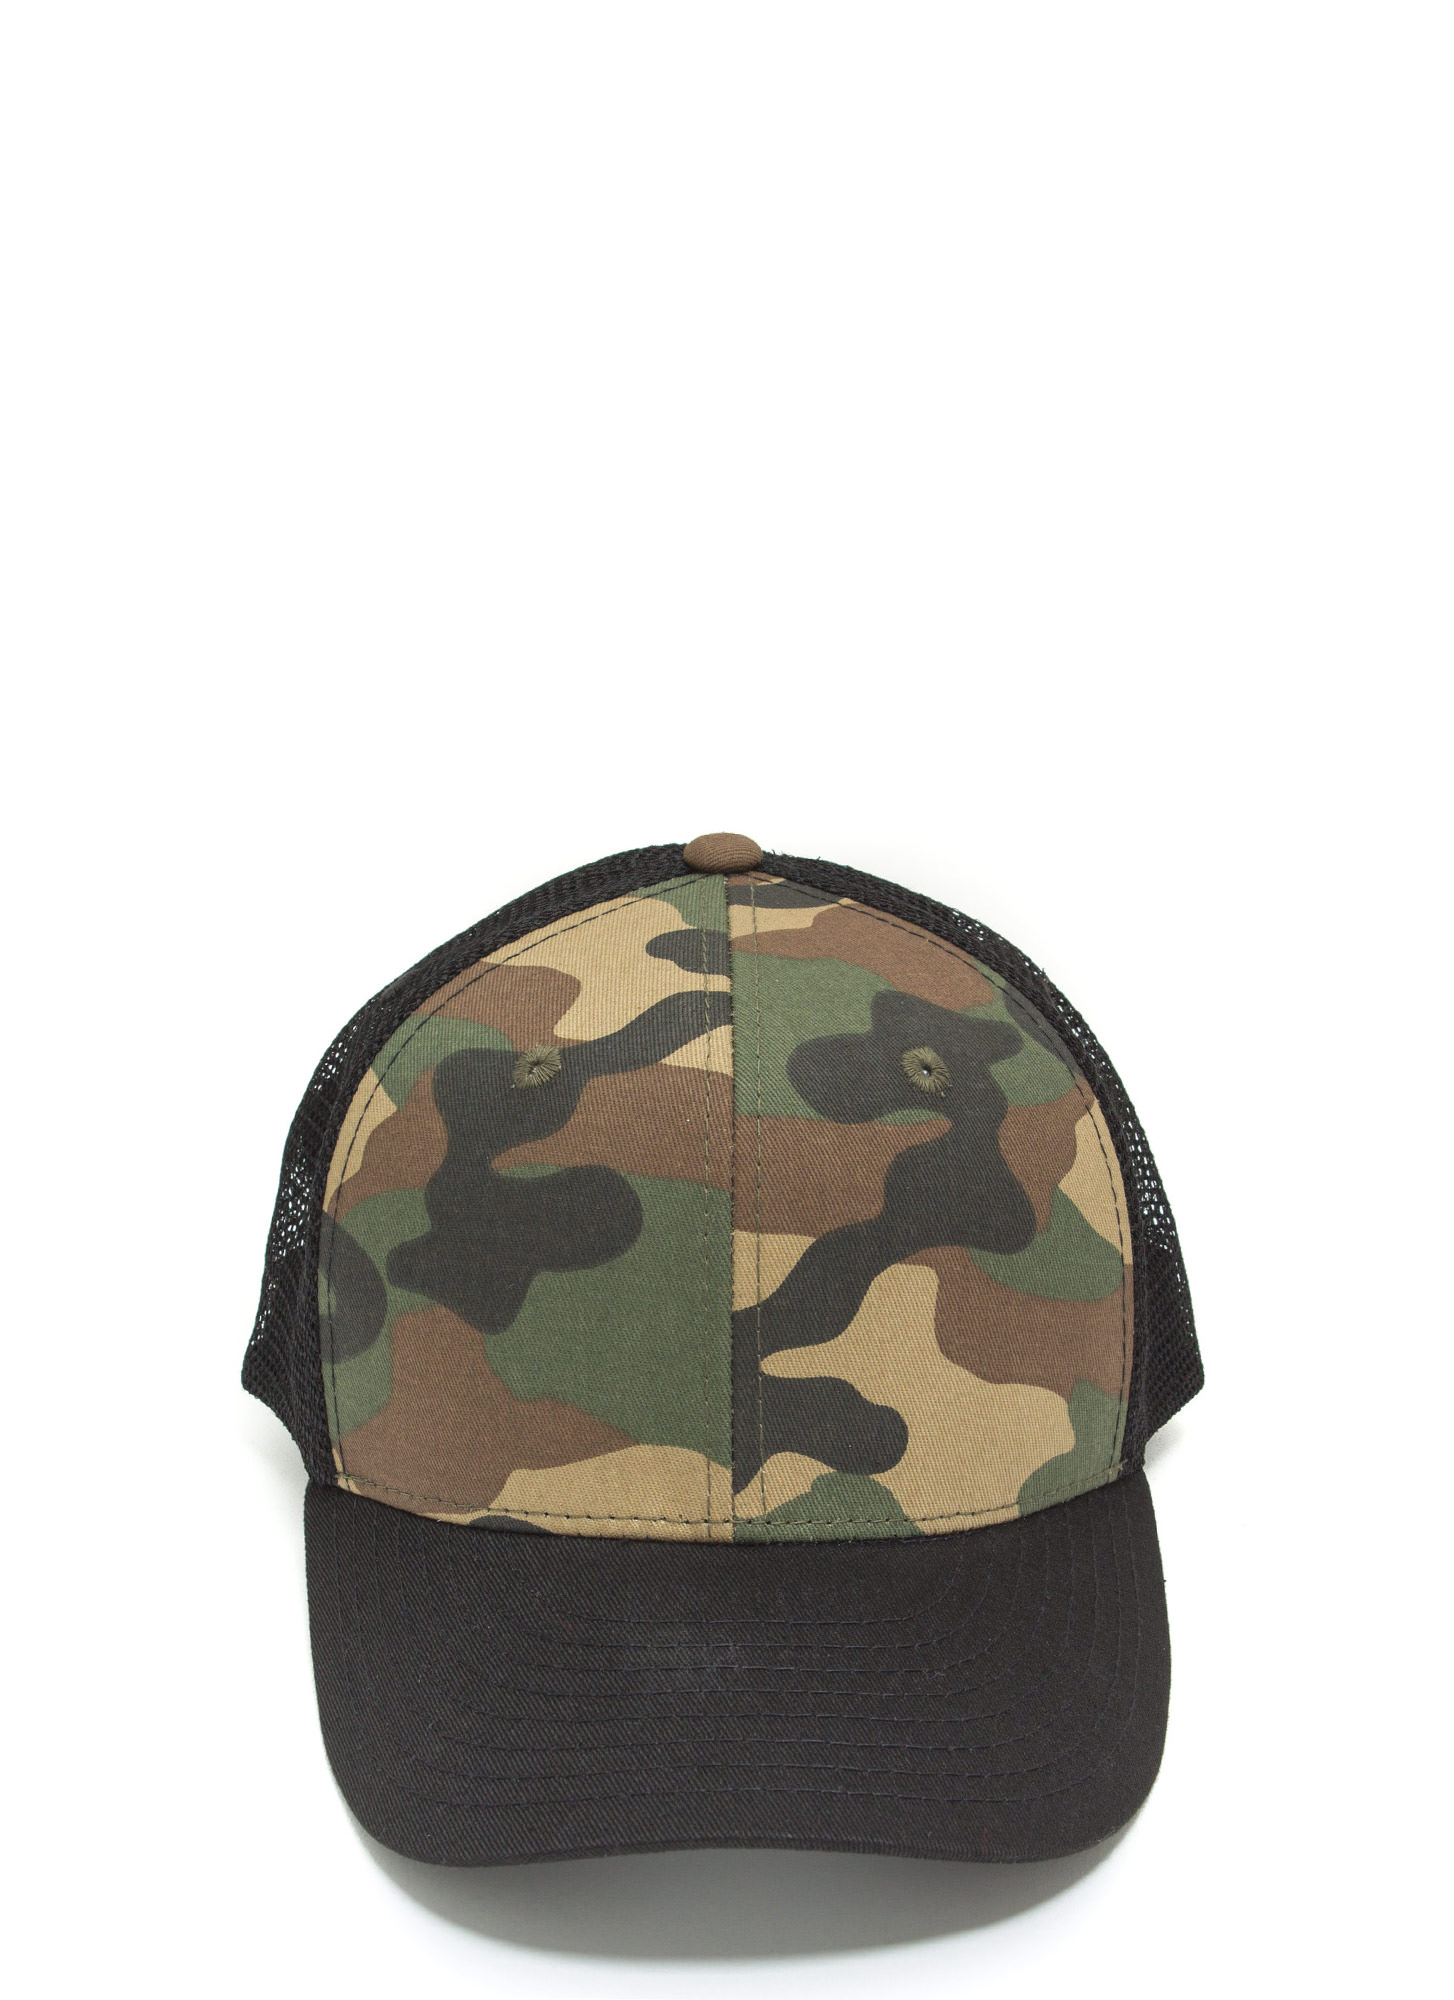 Crazy For Camo Trucker Snapback BLACKOLIVE